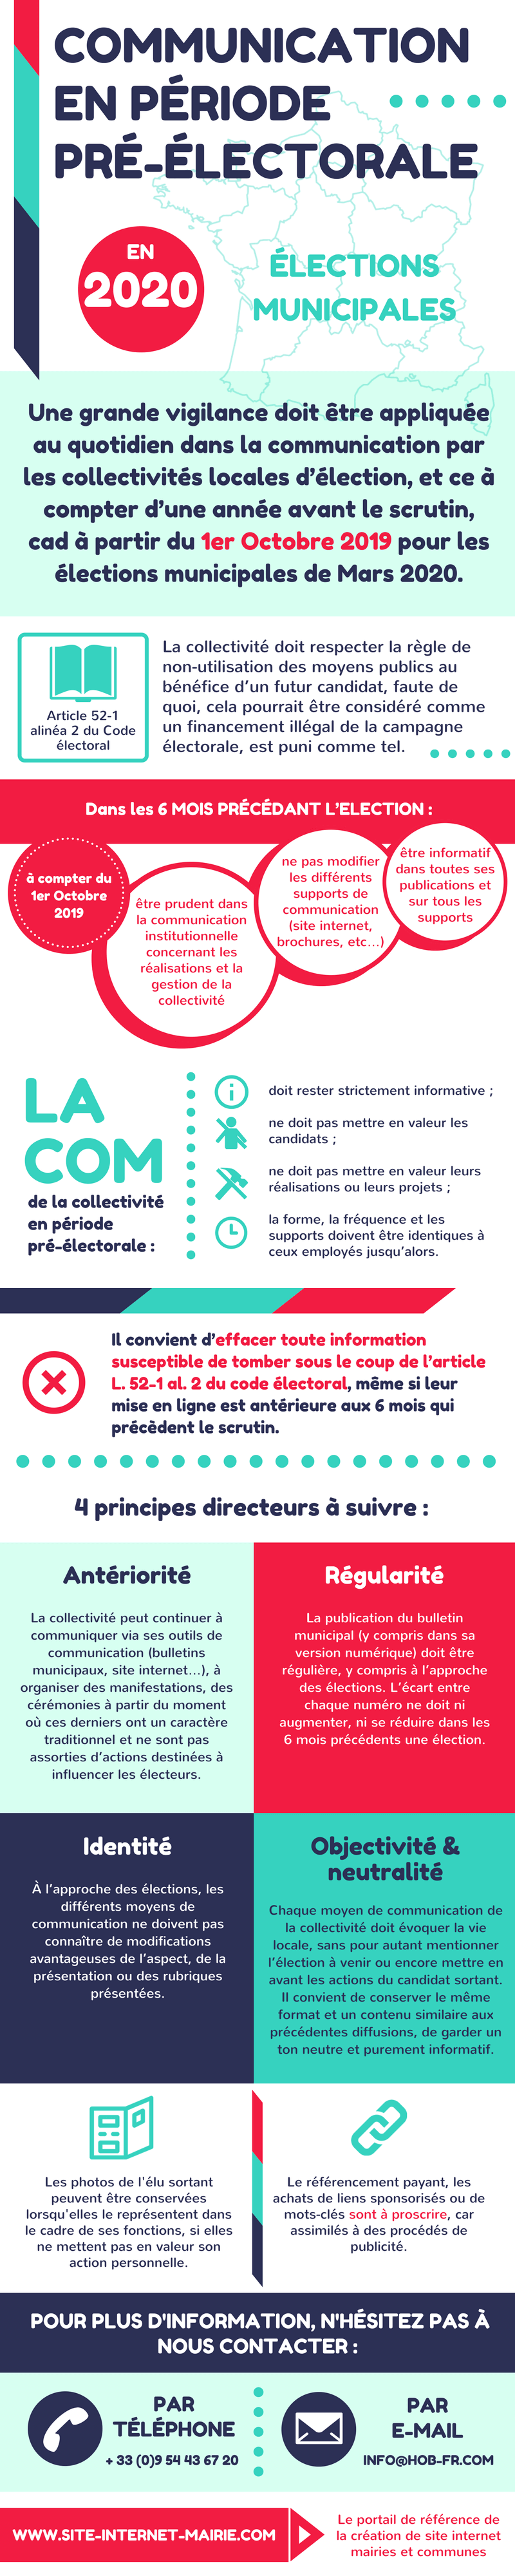 infographie communication pre electorale site internet mairie